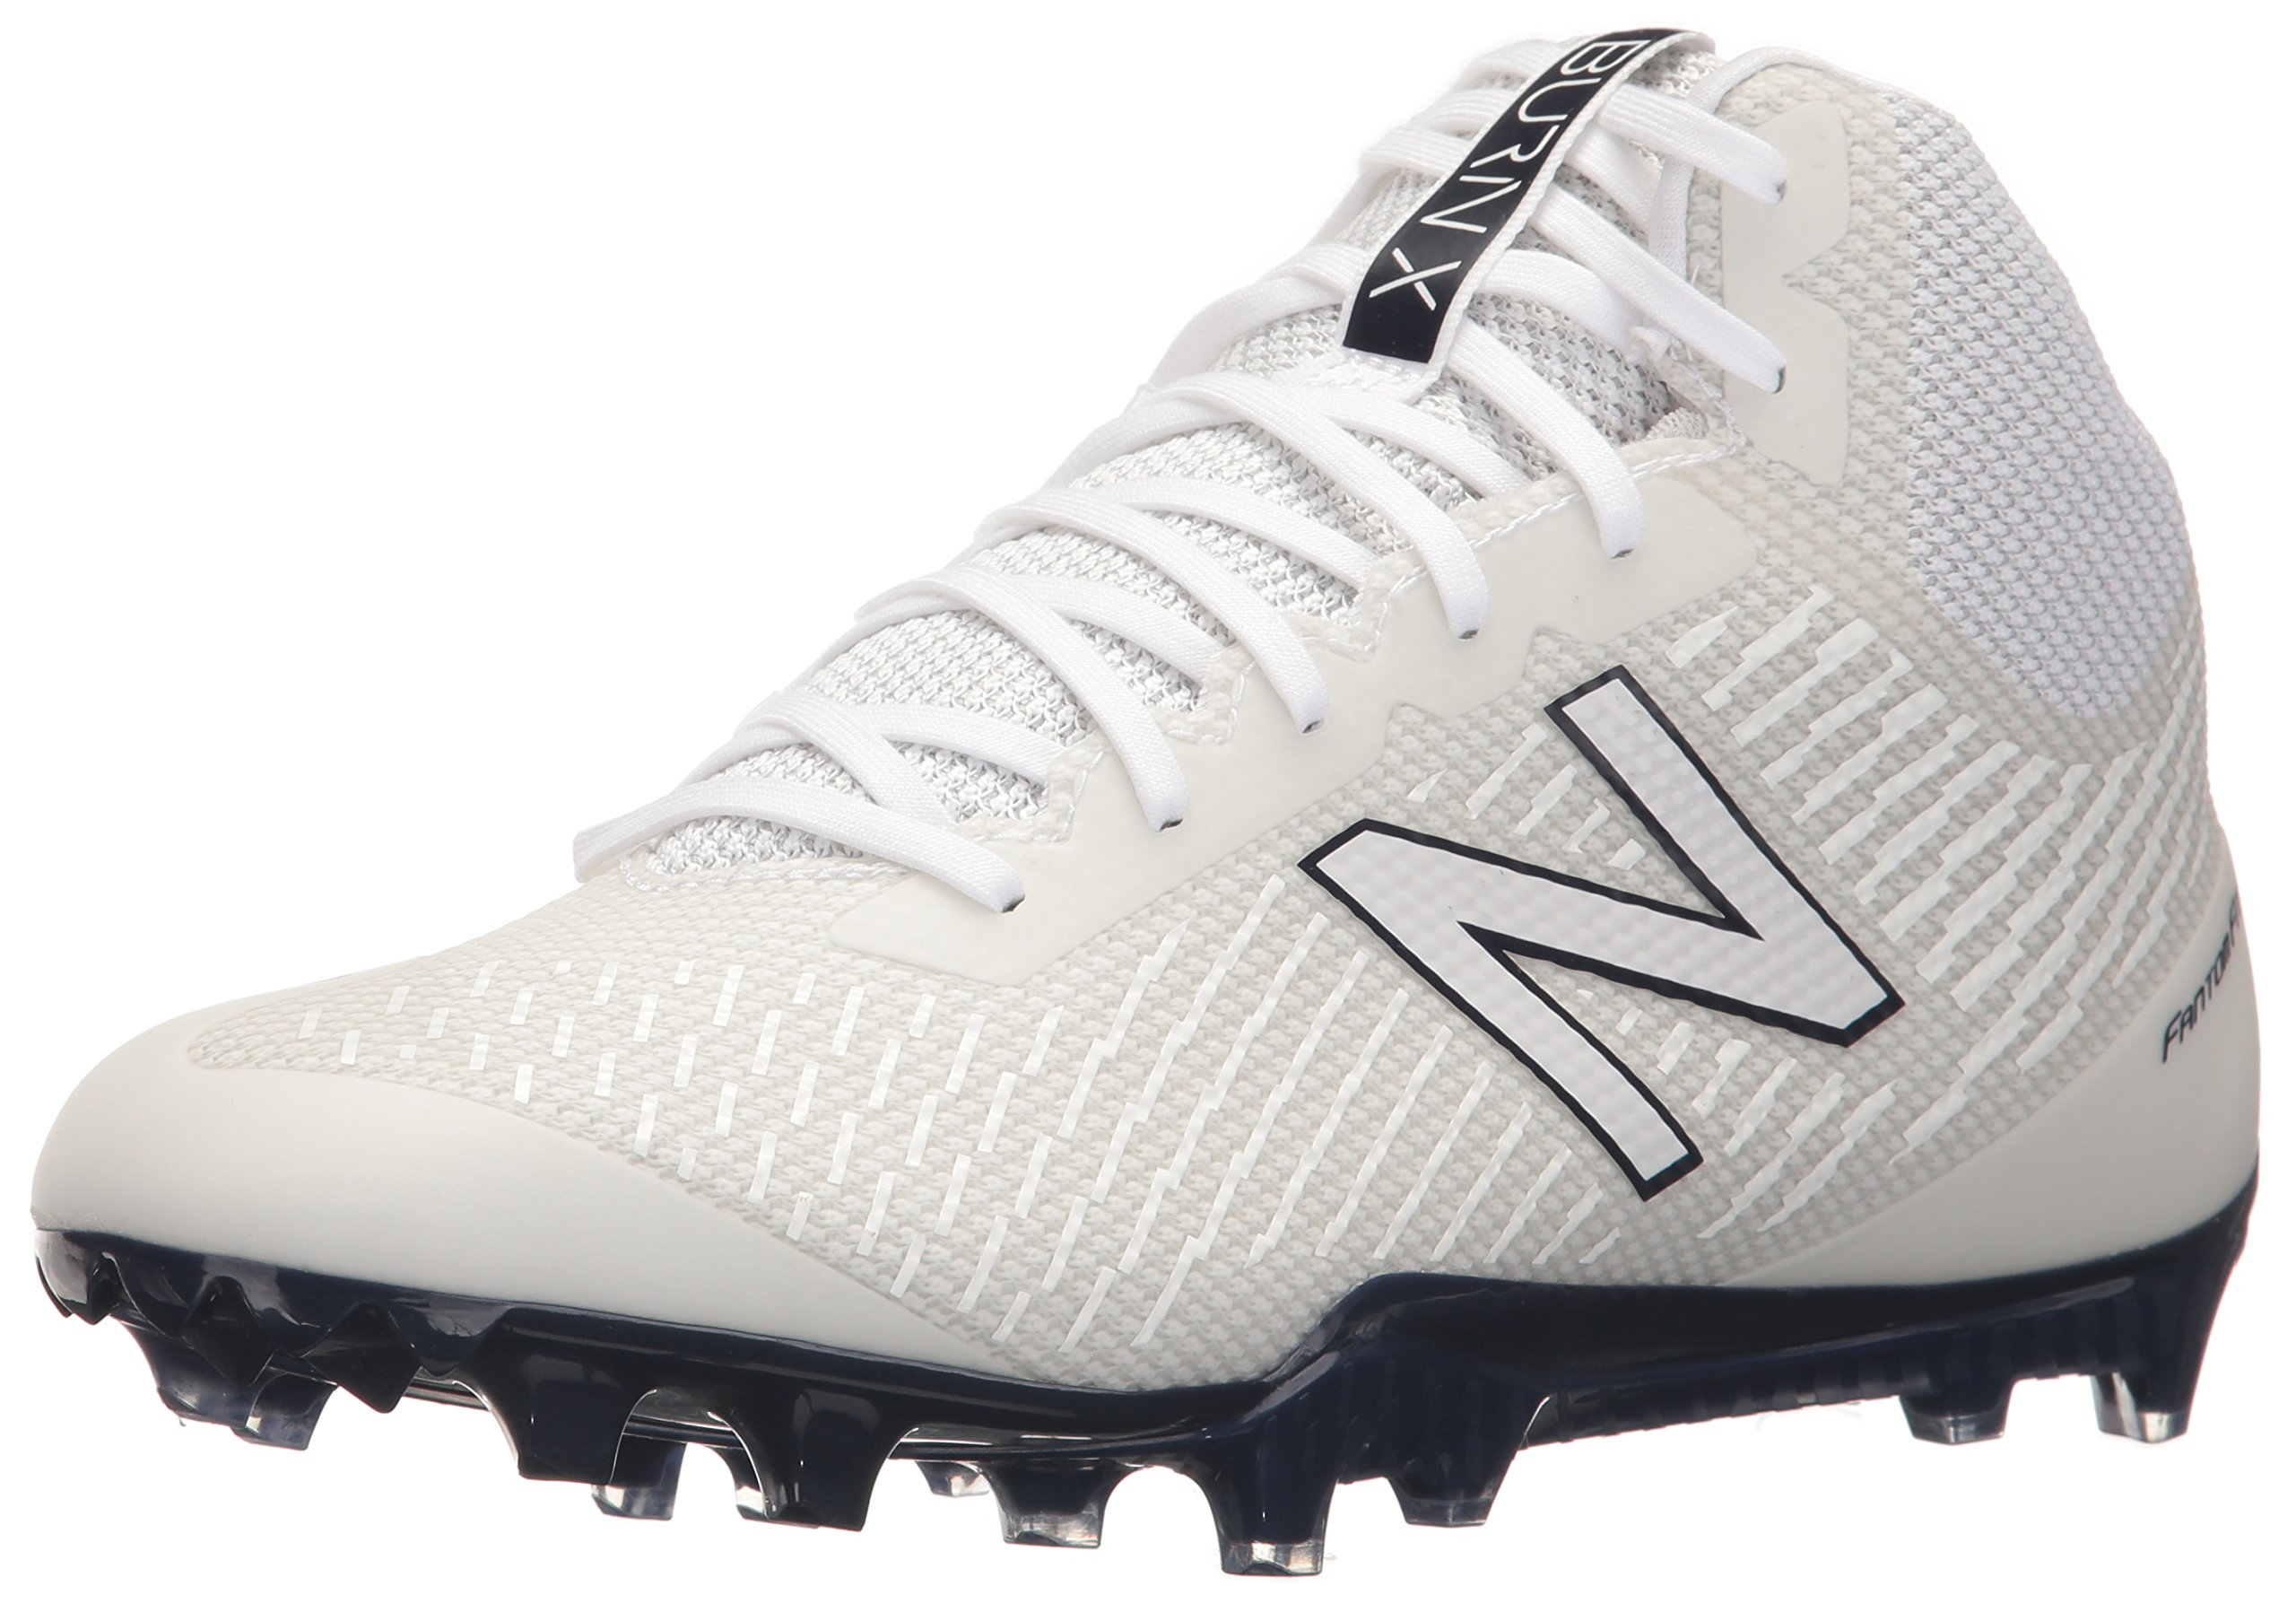 New Balance Men's Burn Mid Speed Lacrosse Shoe, White/Blue, 9.5 D US by New Balance